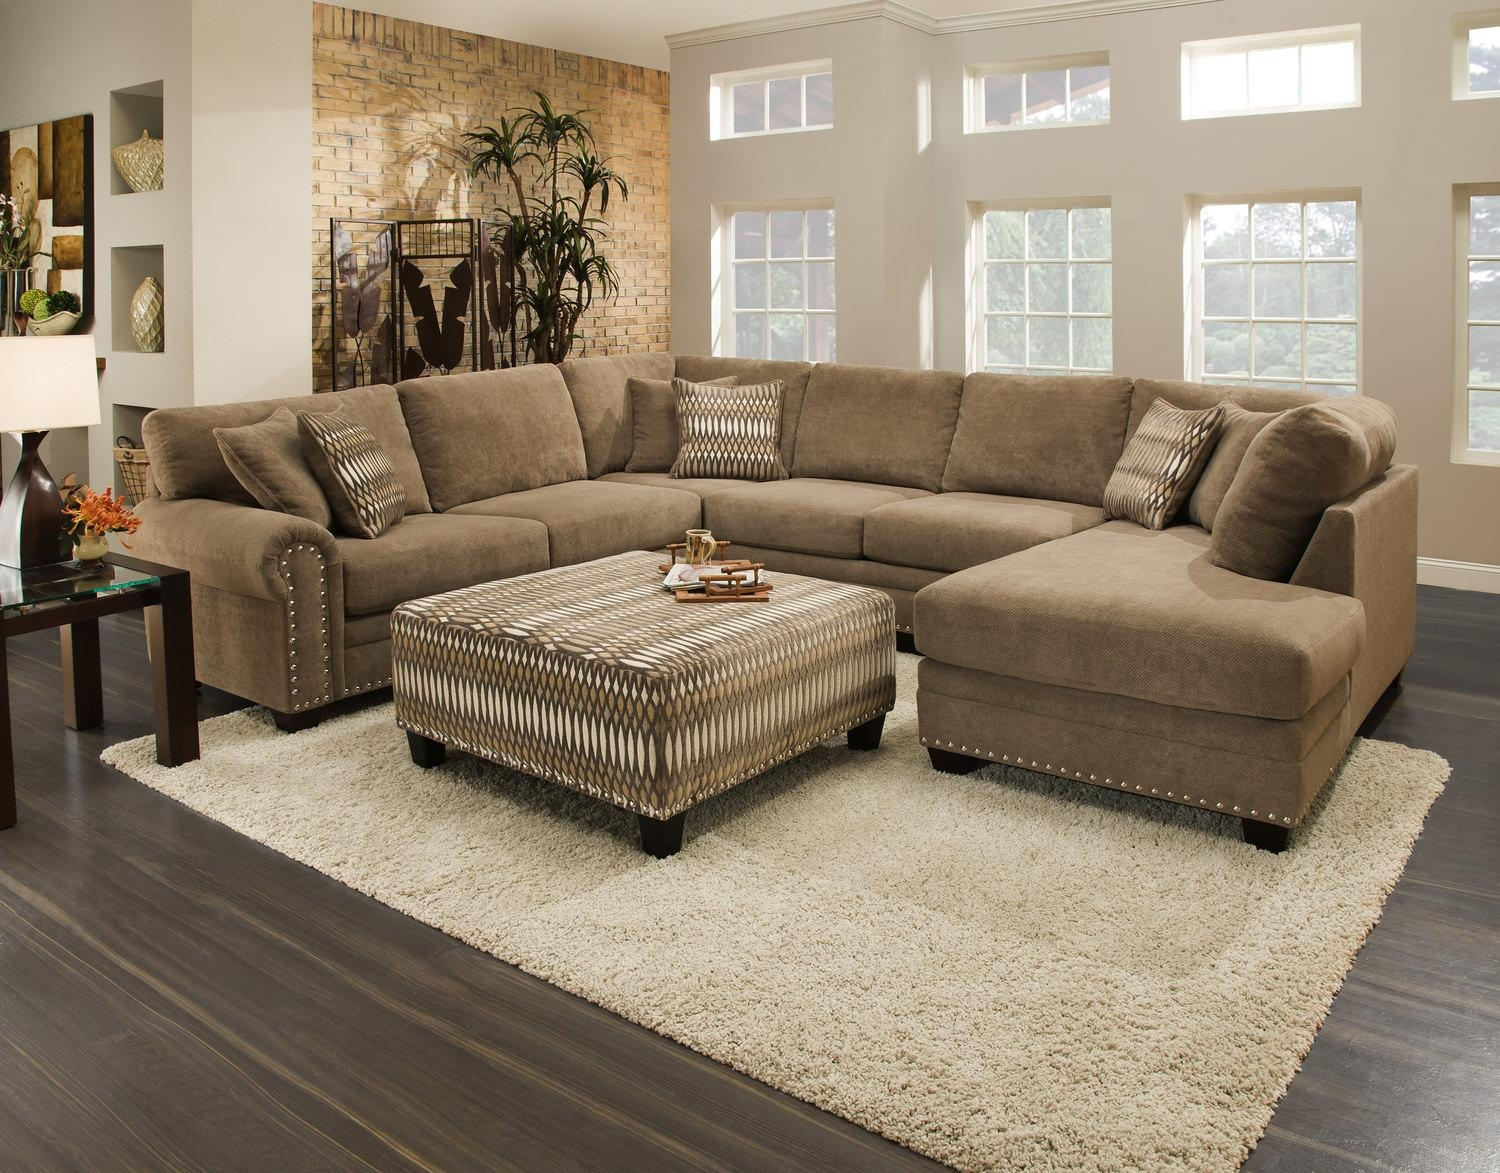 angled sectional sofa 72 inch sofas wood 20 inspirations chaise ideas